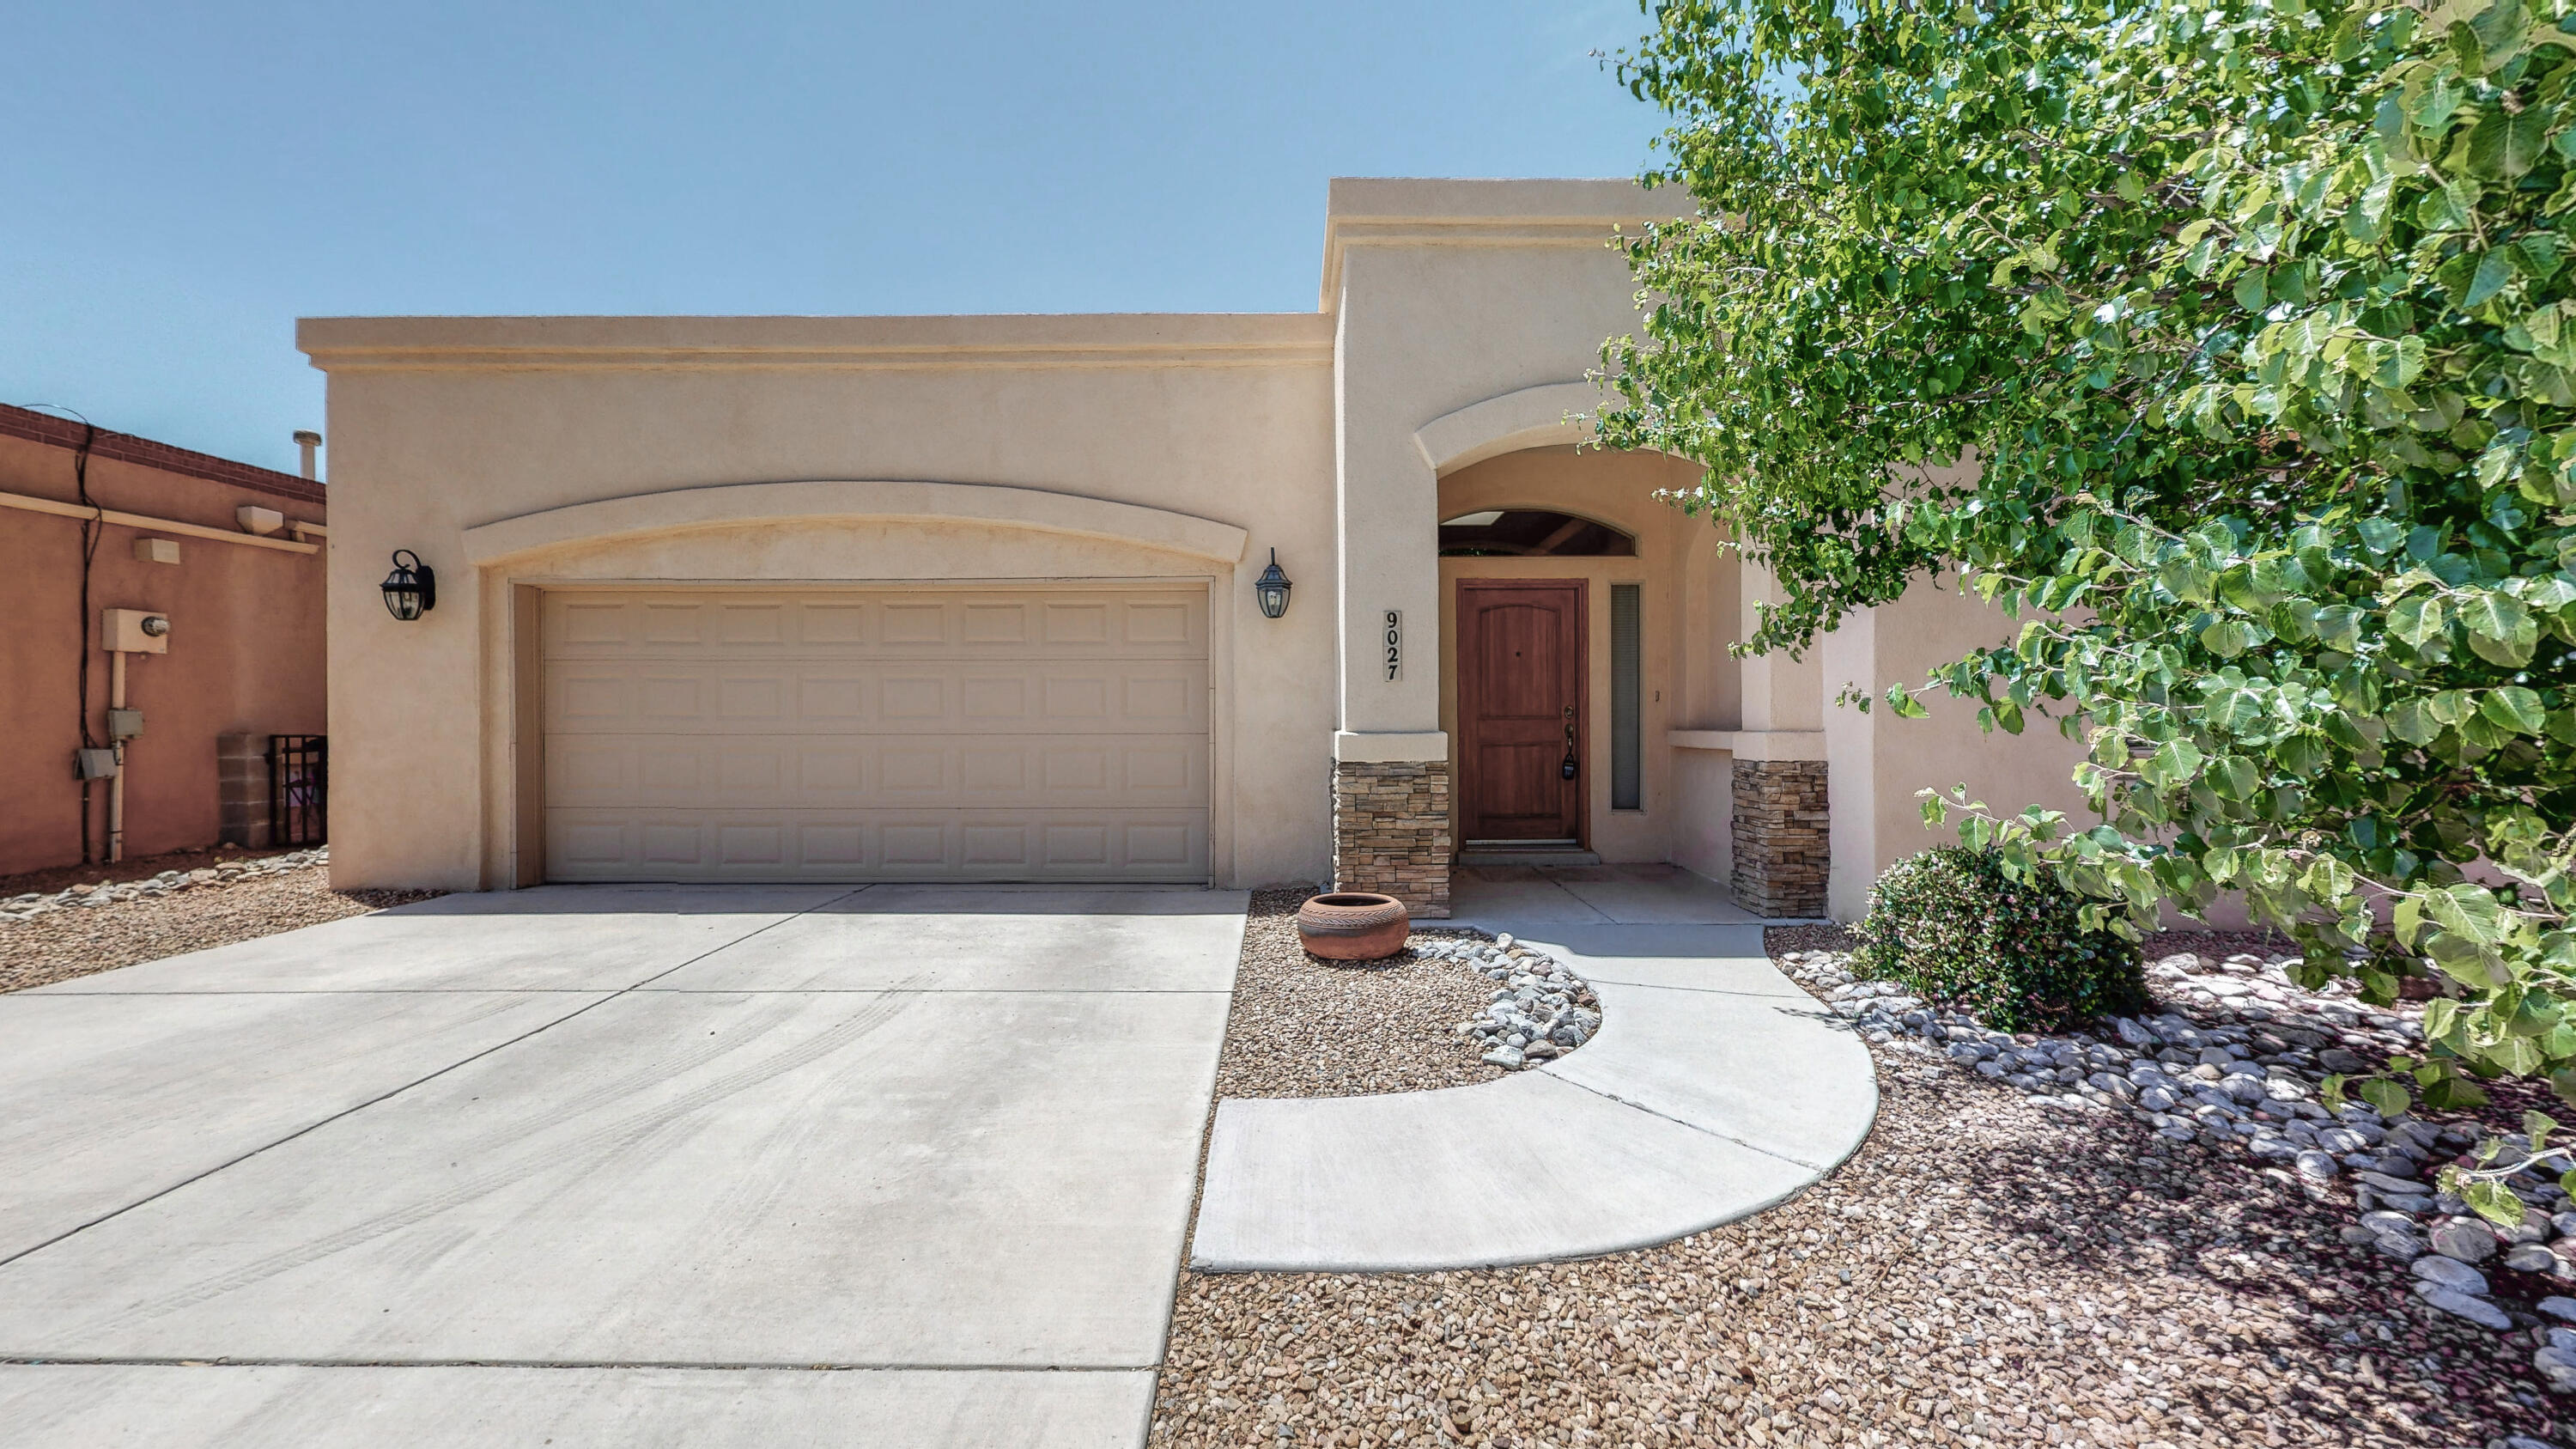 Great location in a desirable NE Heights subdivision for this beautiful custom Lee Michaels home! 4 bedrooms, 2 dinning areas, and a large living area give you ample space to suit your needs. Quick access to Paseo del Norte for shopping, food, and services. Schedule a showing today, this won't last long!